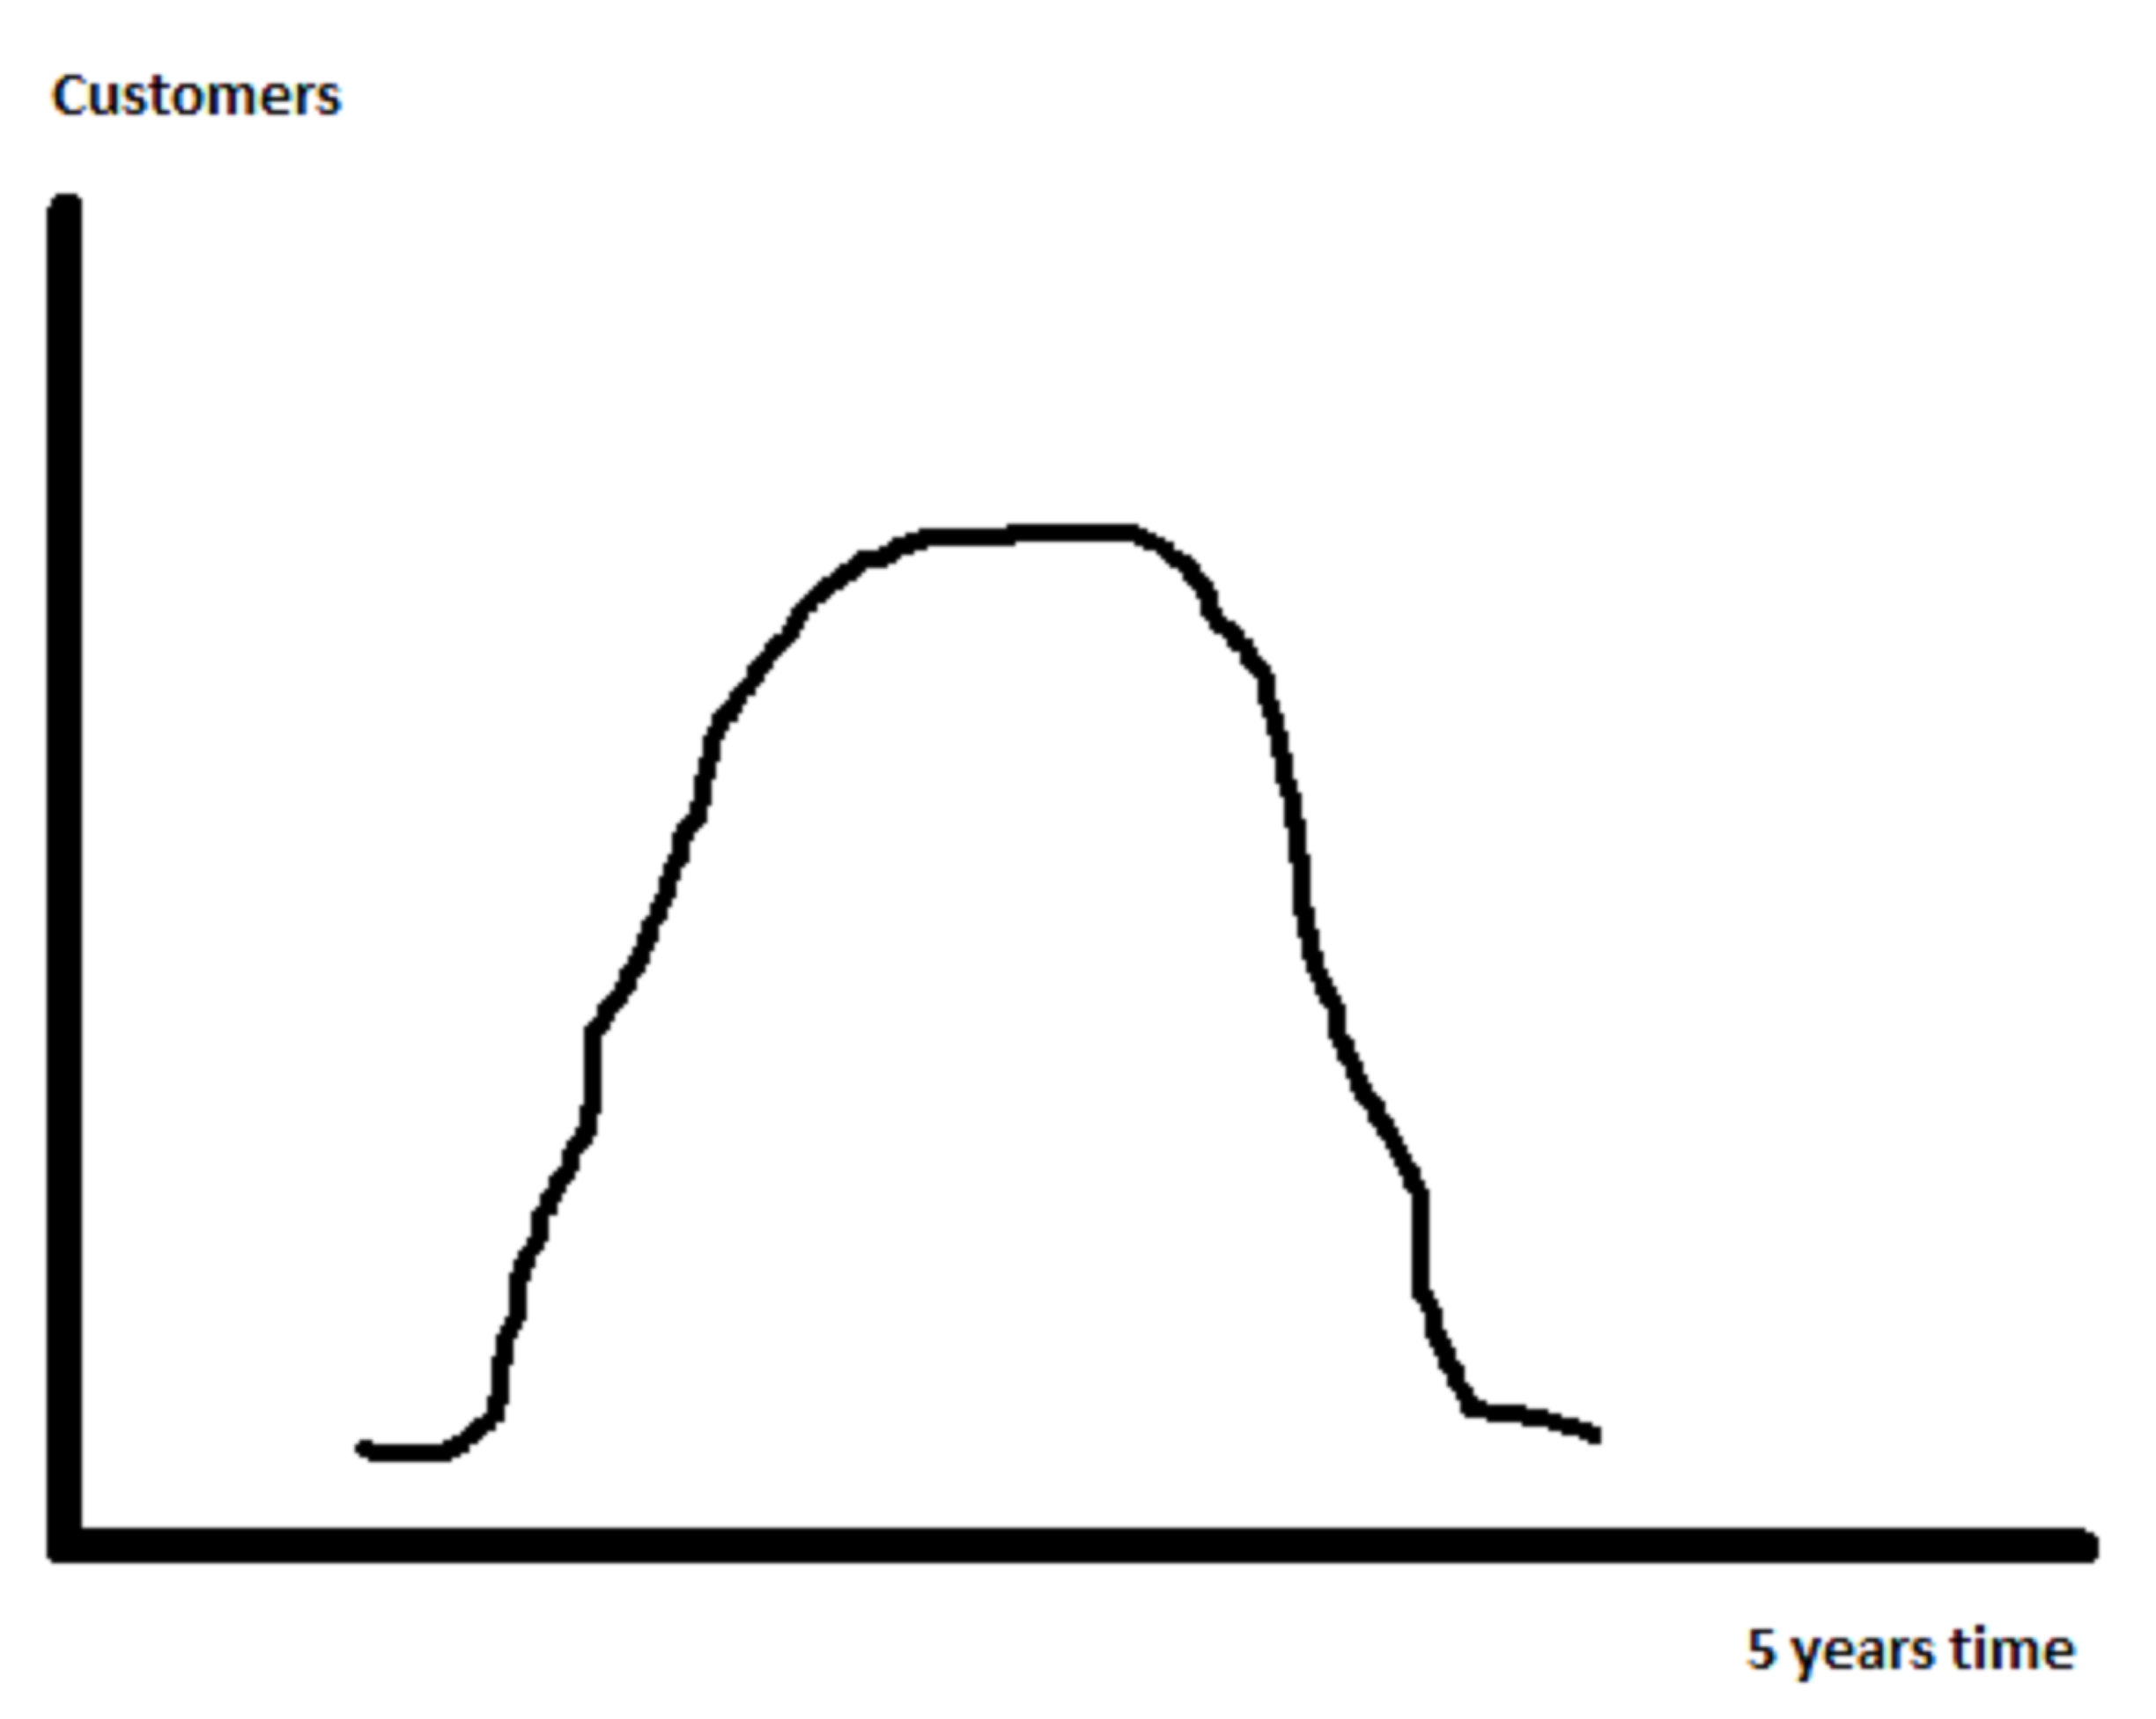 Bell Curve: It takes 5 years for the public to see if you really offer a true value.